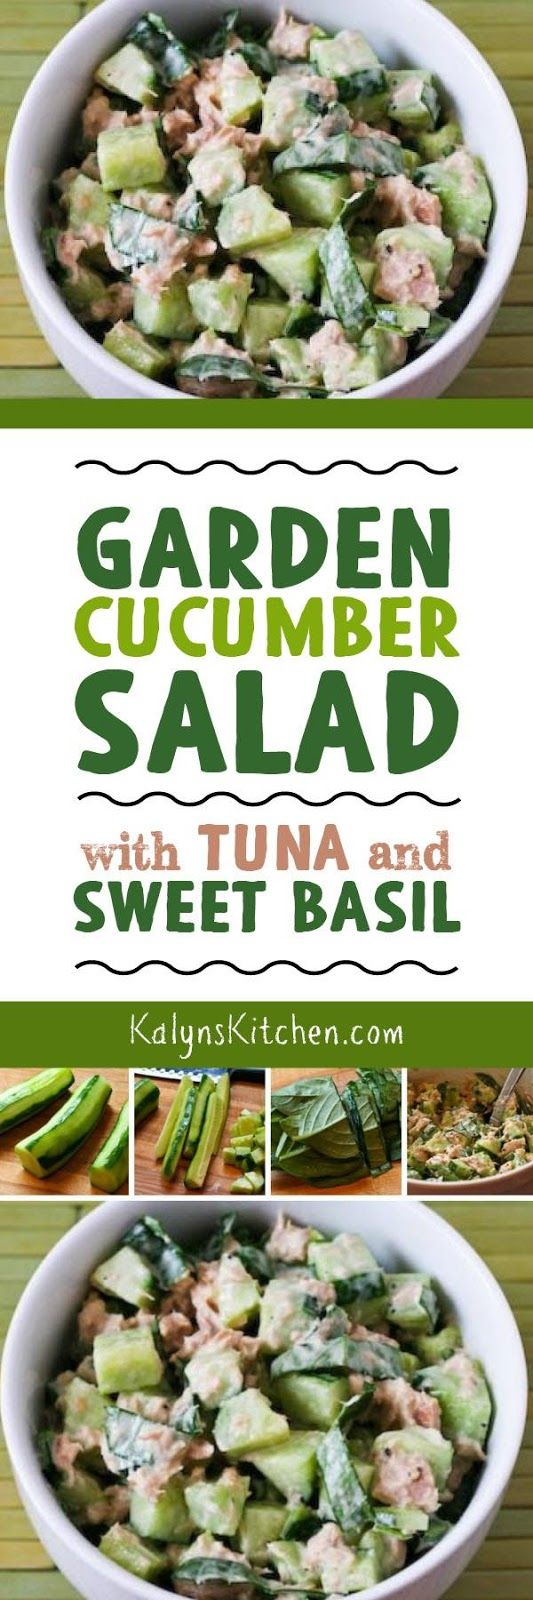 I love this simple Garden Cucumber Salad with Tuna and Sweet Basil, especially with the Italian tuna packed in olive oil that I'm so fond of. And this simple but amazing salad is low-carb, Keto, low-glycemic, gluten-free, dairy-free, South Beach Diet friendly, and can easily be Paleo or Whole 30 with the right dressing. [found on KalynsKitchen.com]